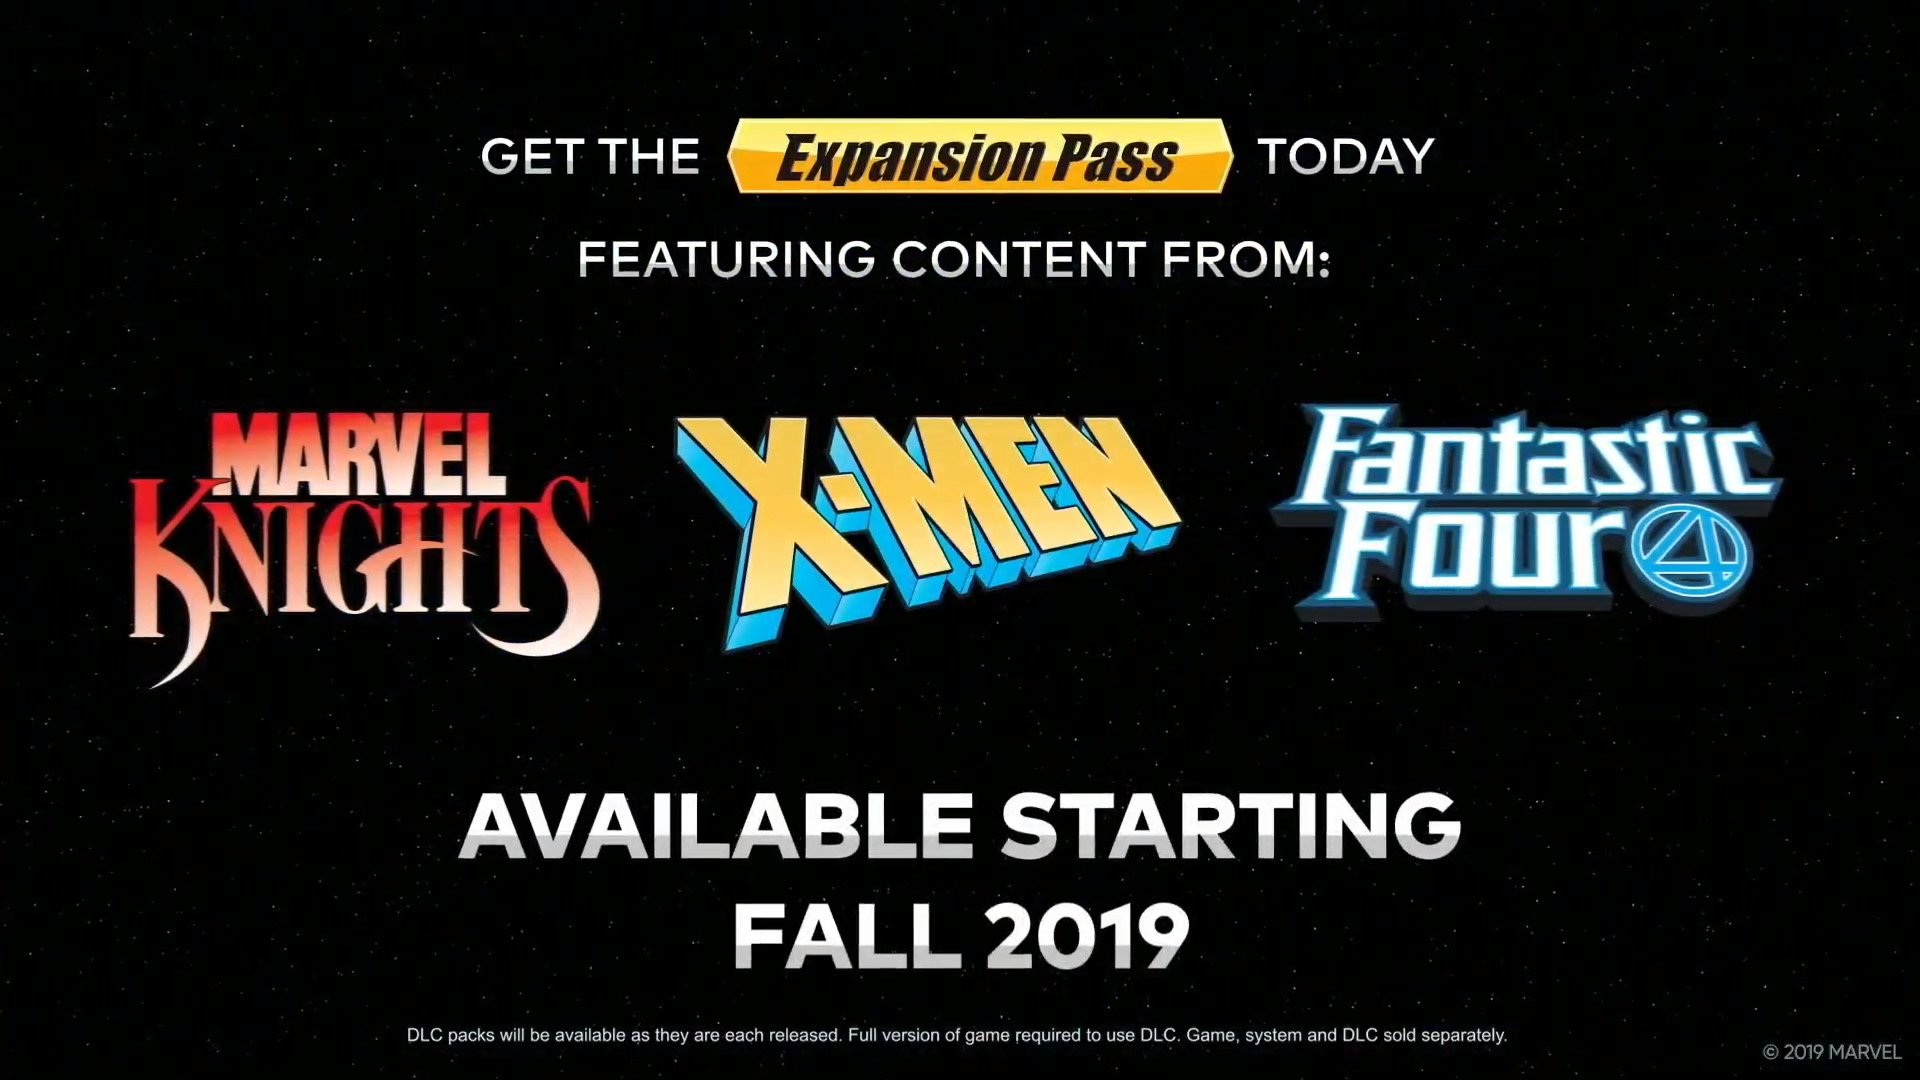 Marvel Ultimate Alliance 3: The Black Order expansion pass revealed